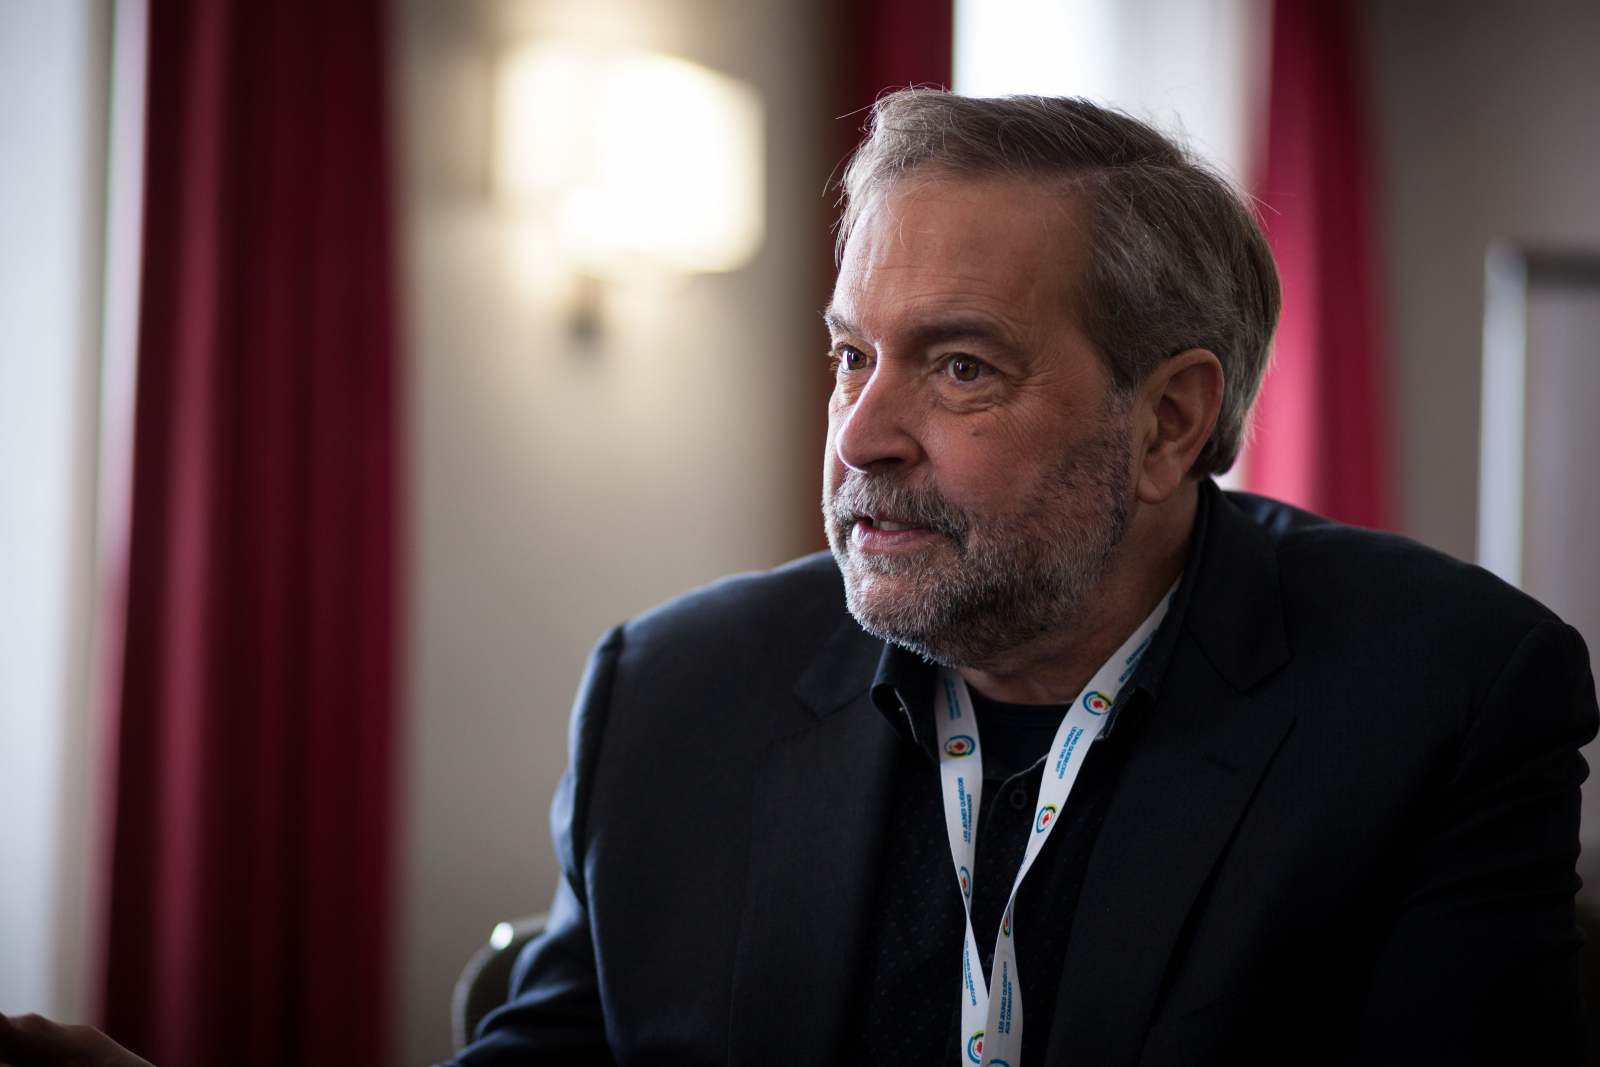 Thomas Mulcair, Gatineau, Quebec Community Groups Network, New Democratic Party of Canada, NDP